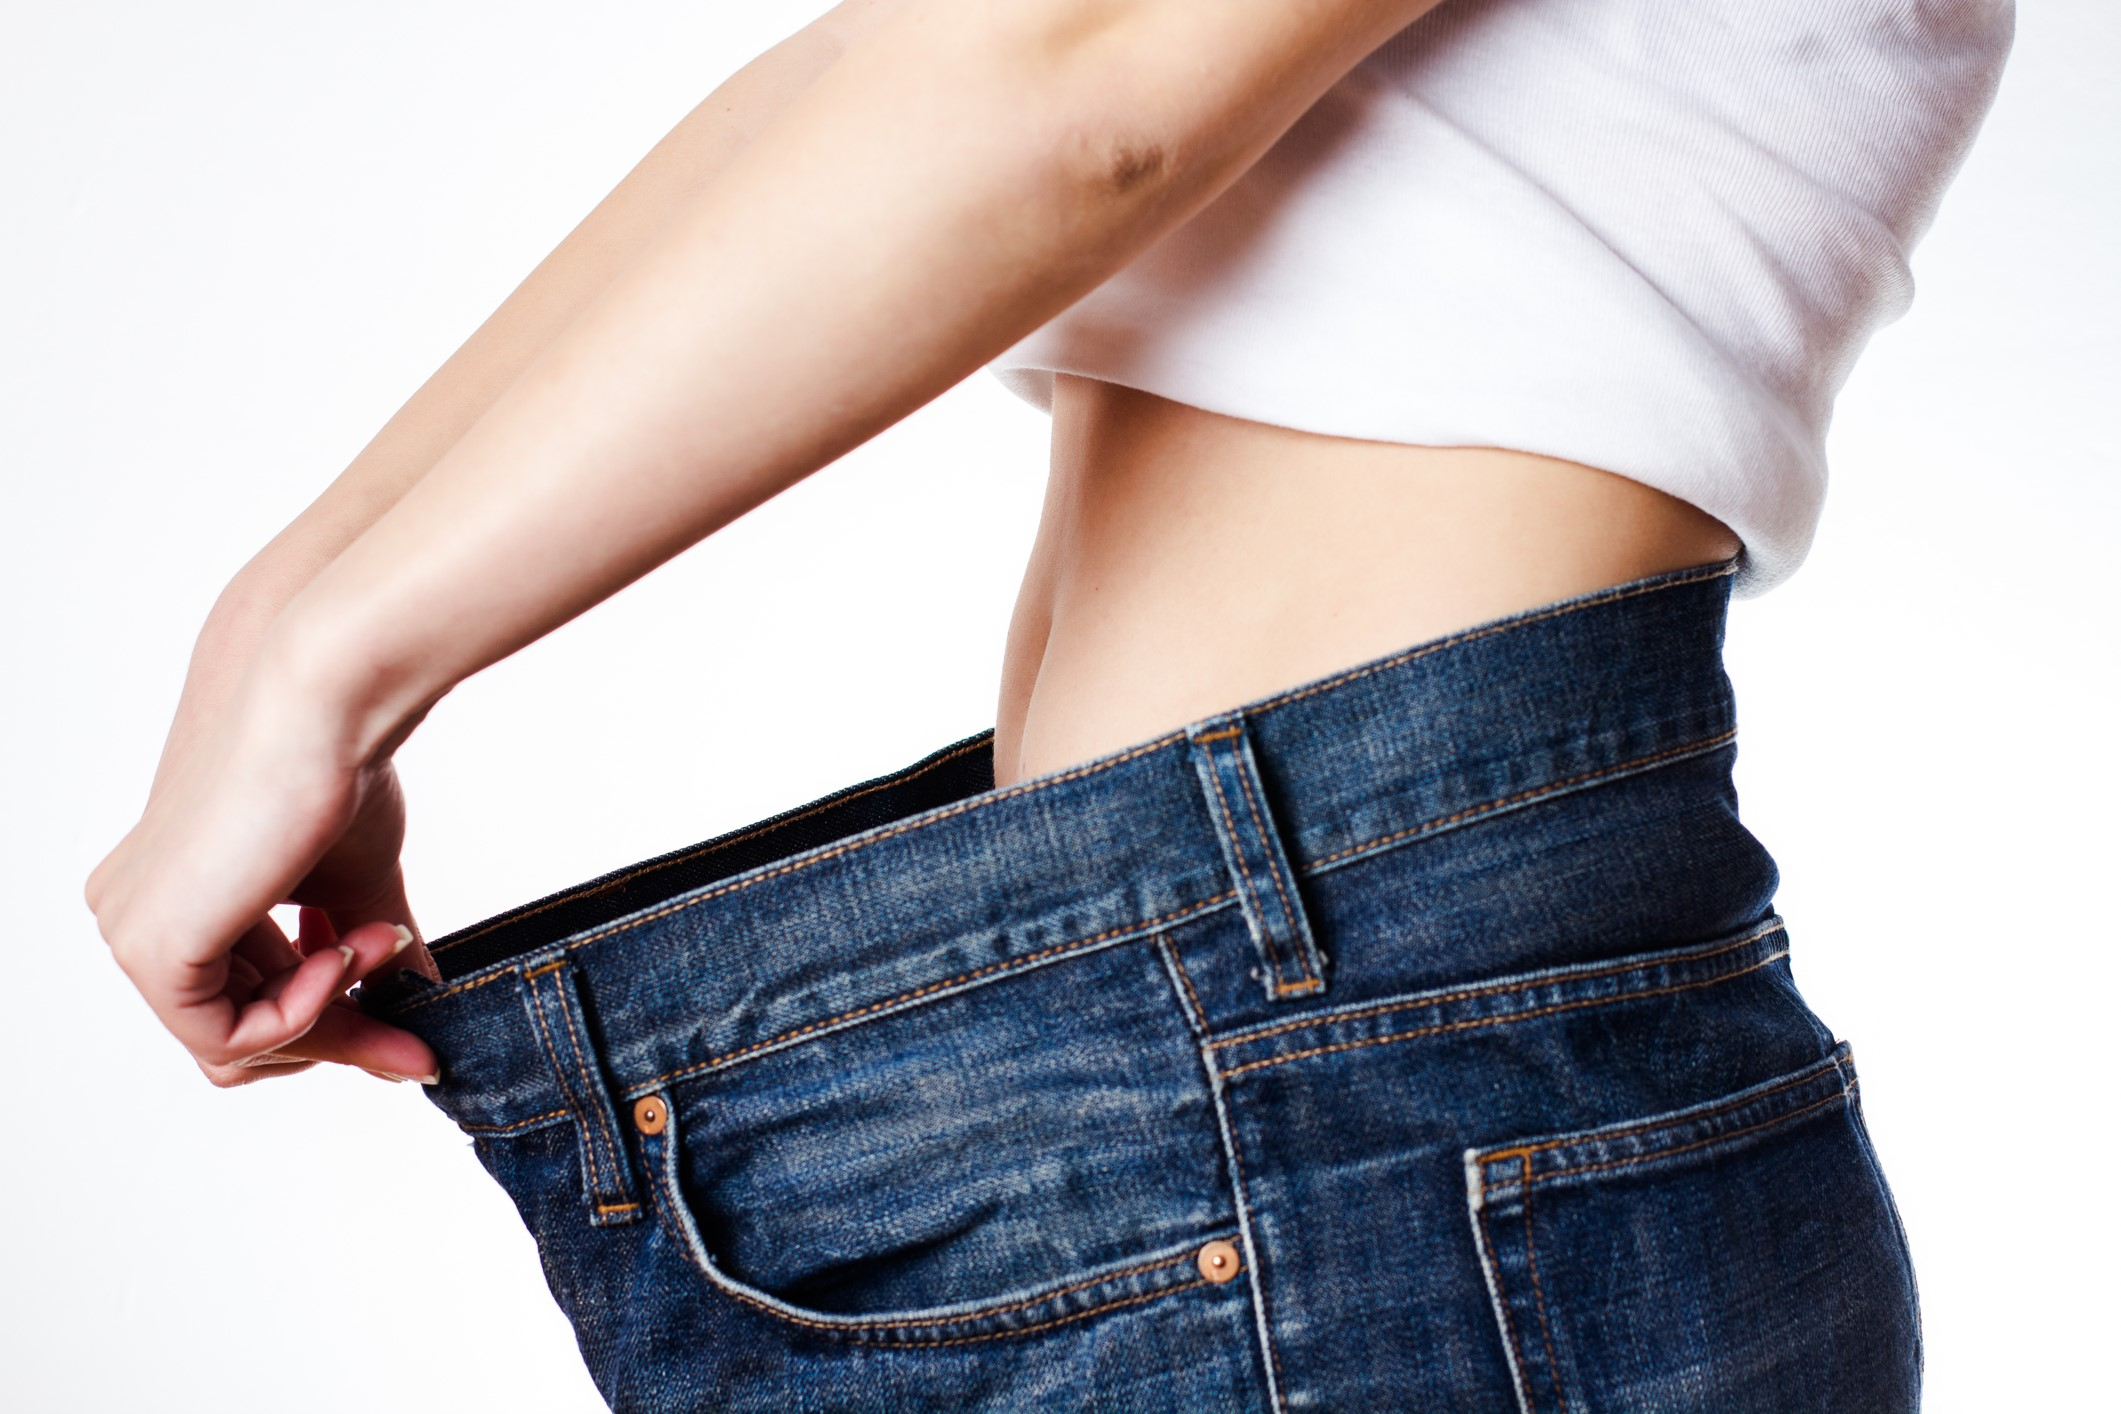 Weight loss without surgery